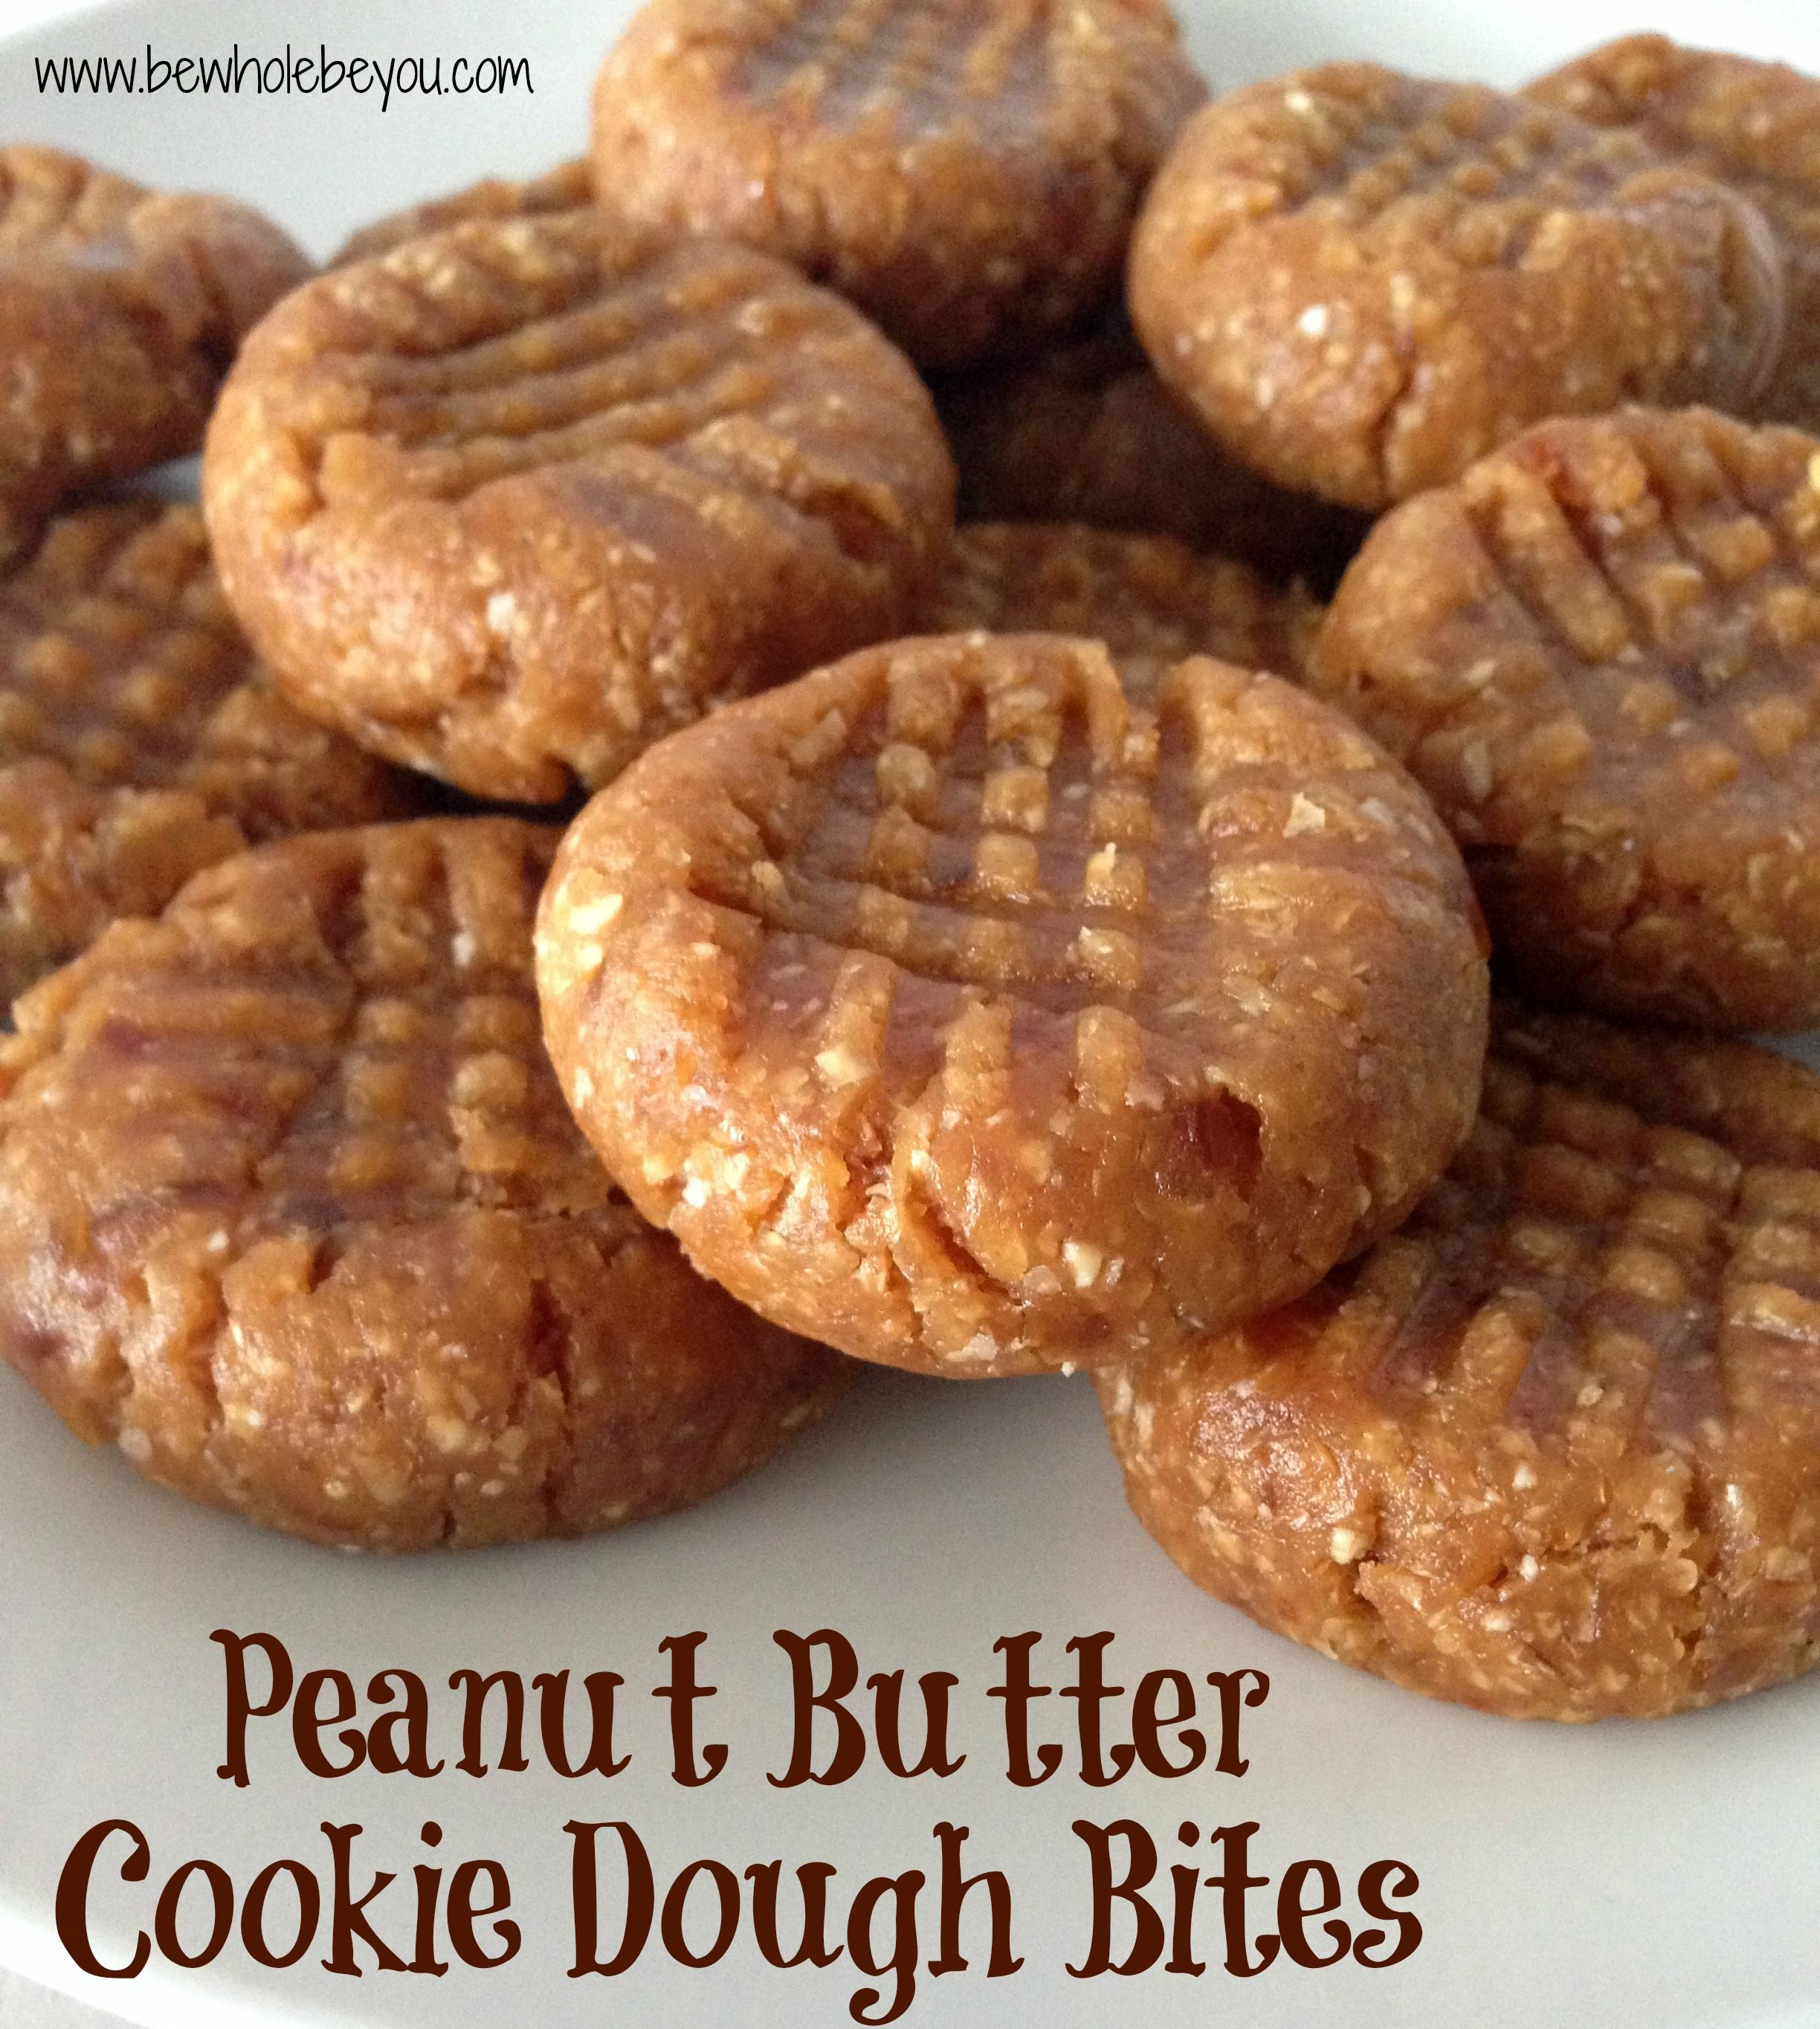 Peanut Butter Cookie Dough Bites. No bake and egg free so eat up! No refined sugar. #glutenfree #dairyfree #eggfree